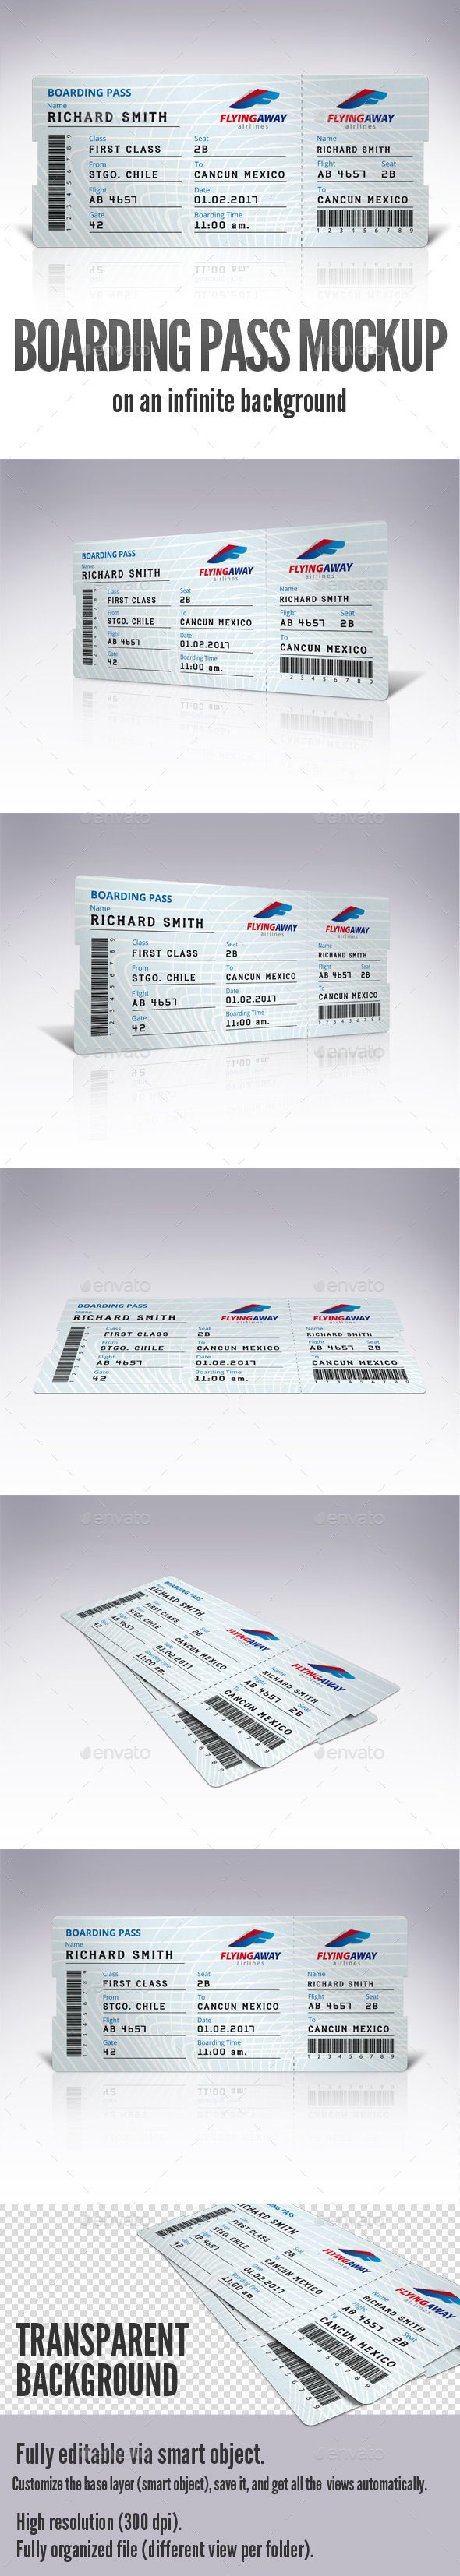 Print Mockup - Boarding Pass Mockup - Print Mockup by doghead.  #WebElements #Logo #TuesdayWisdom #UIUX #Graphic  #TuesdayThoughts #DesignTemplate #CyberMonday #UserInterface #TuesdayMotivation #HappyTuesday #Vectors #BlackFriday #PresentationTemplate#TuesdayFeeling